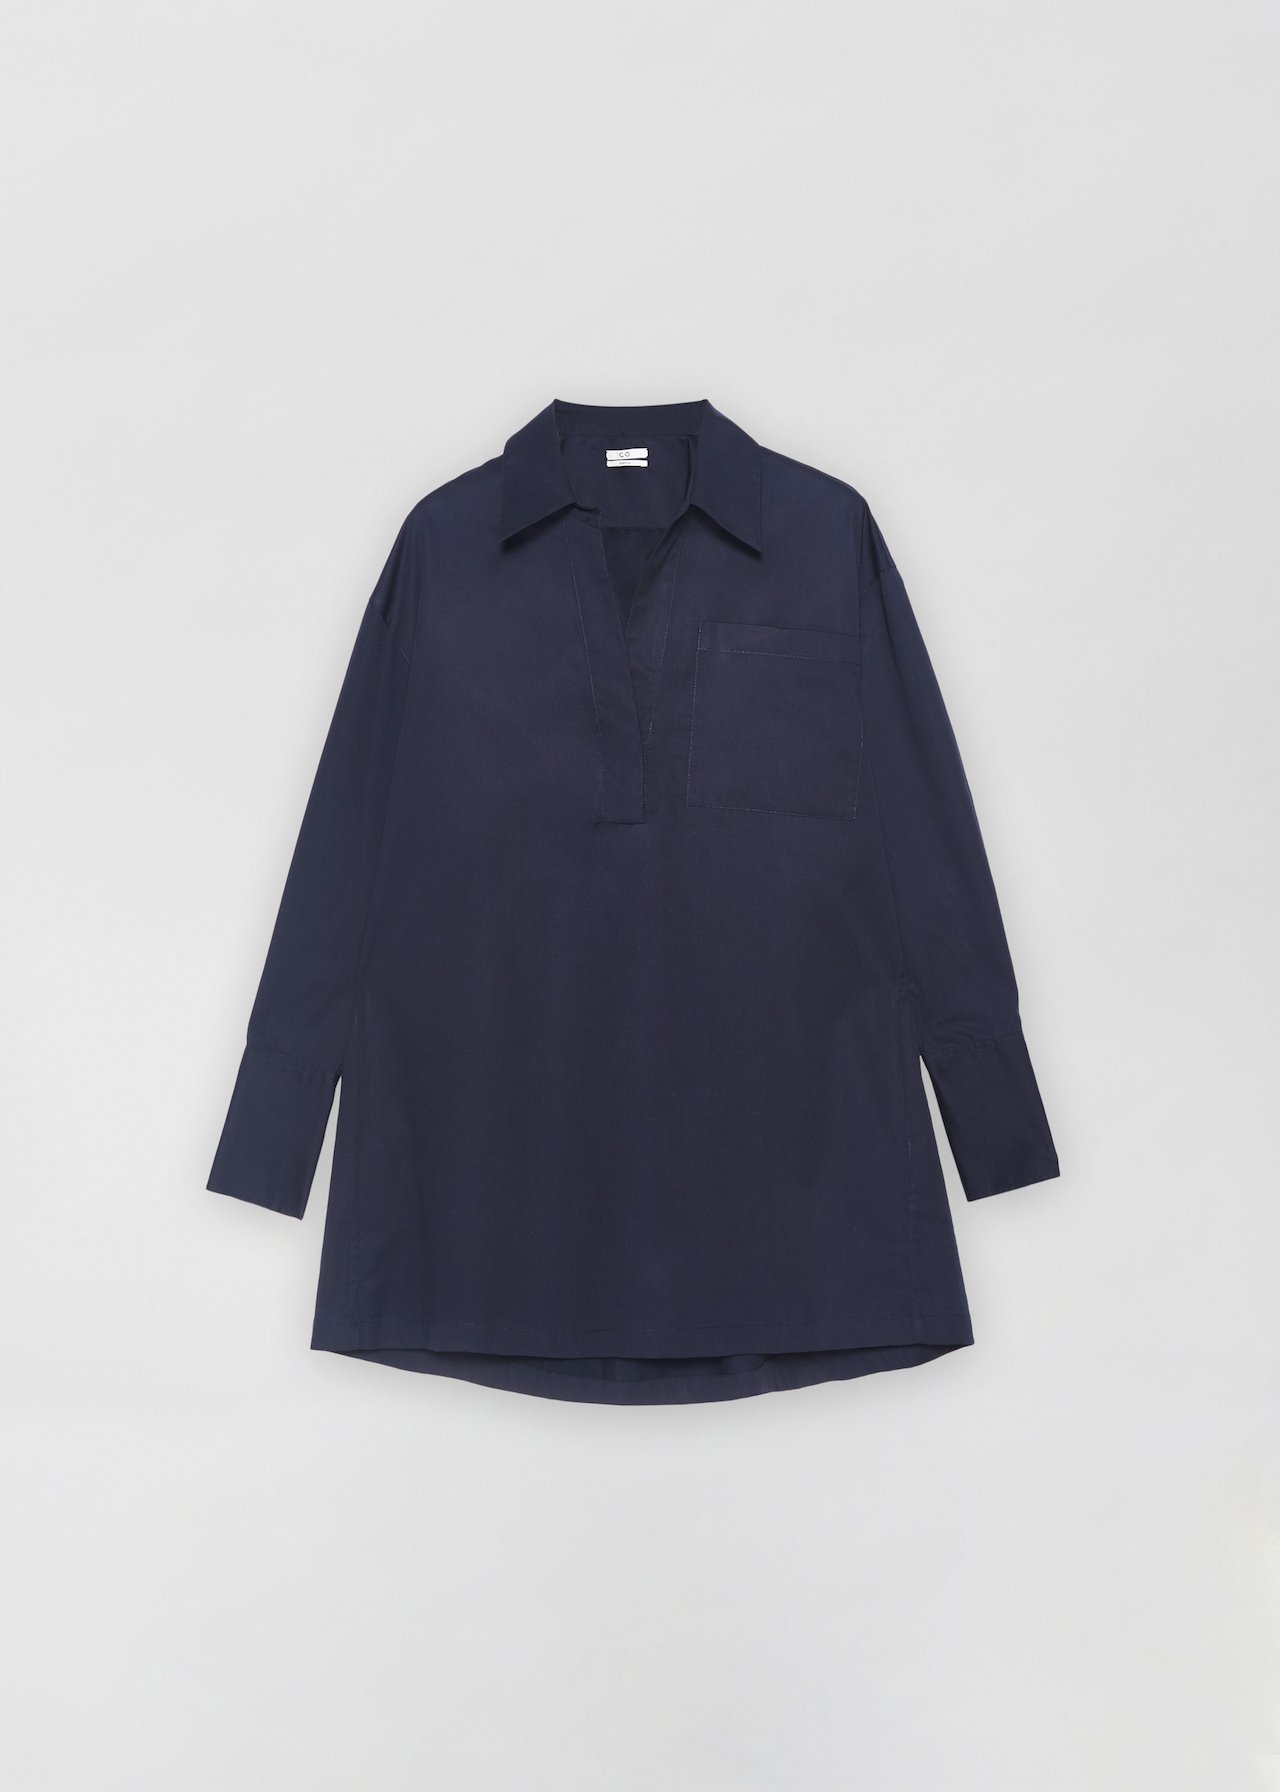 Half Placket Shirt - White in Navy by Co Collections